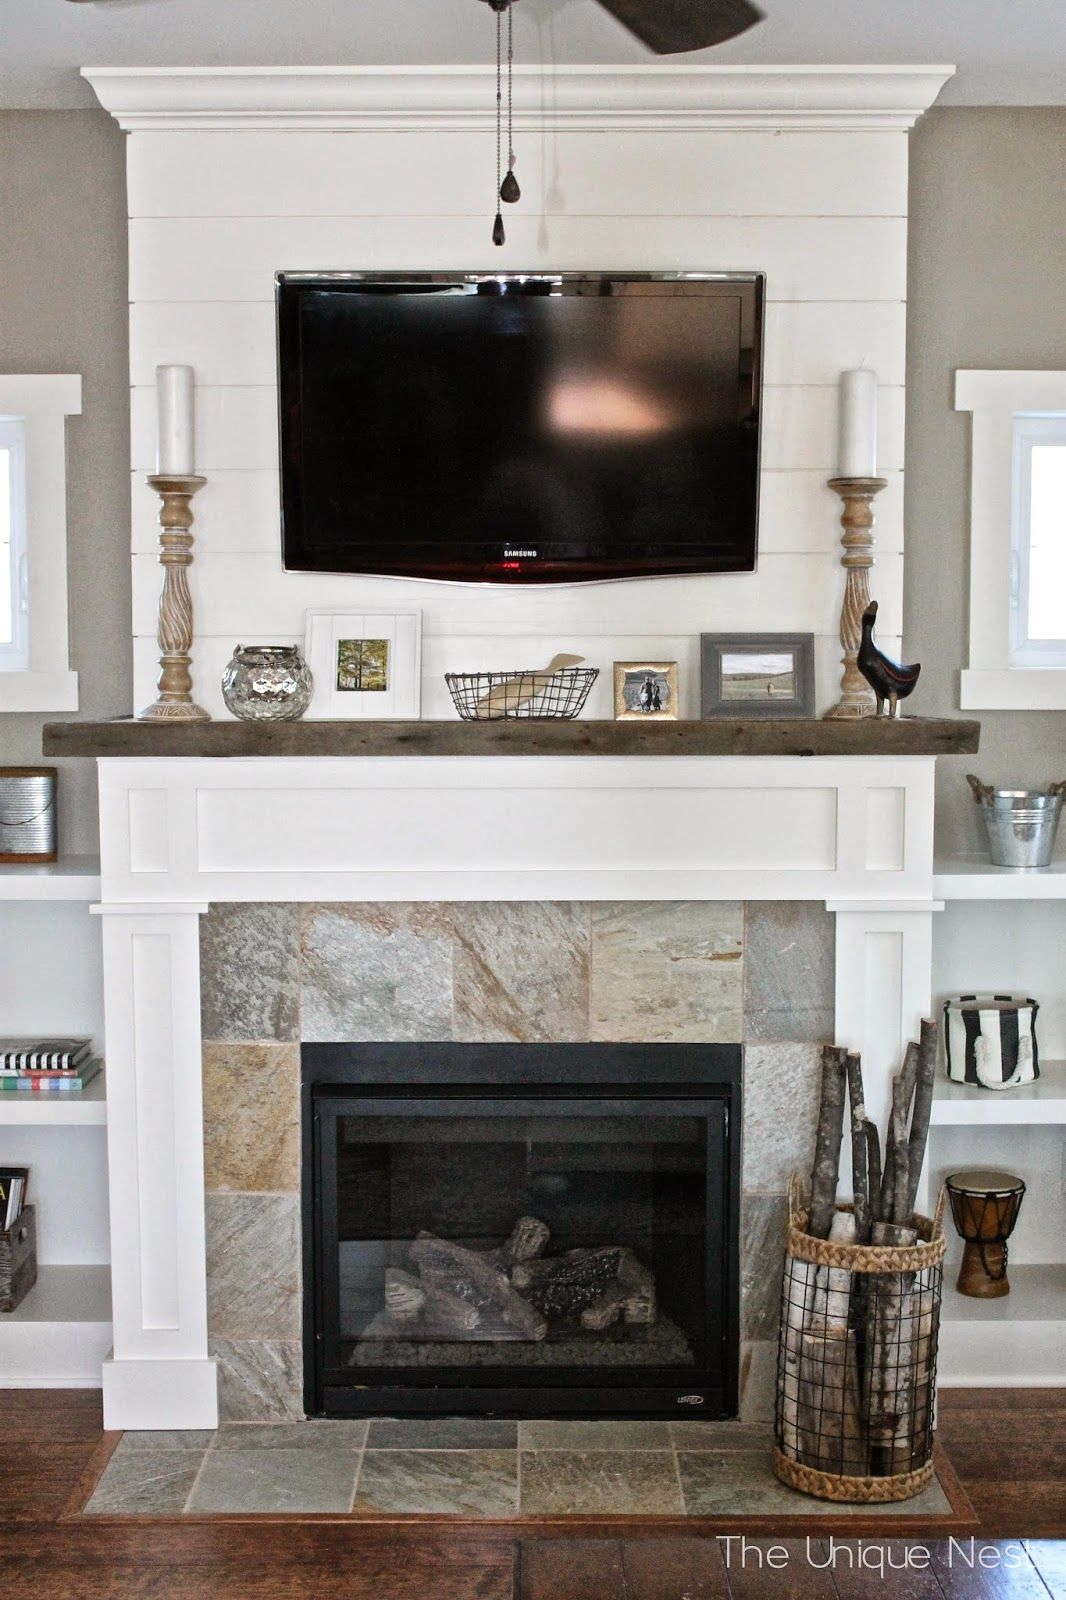 The Unique Nest Shiplap Fireplace With Built Ins Fireplace